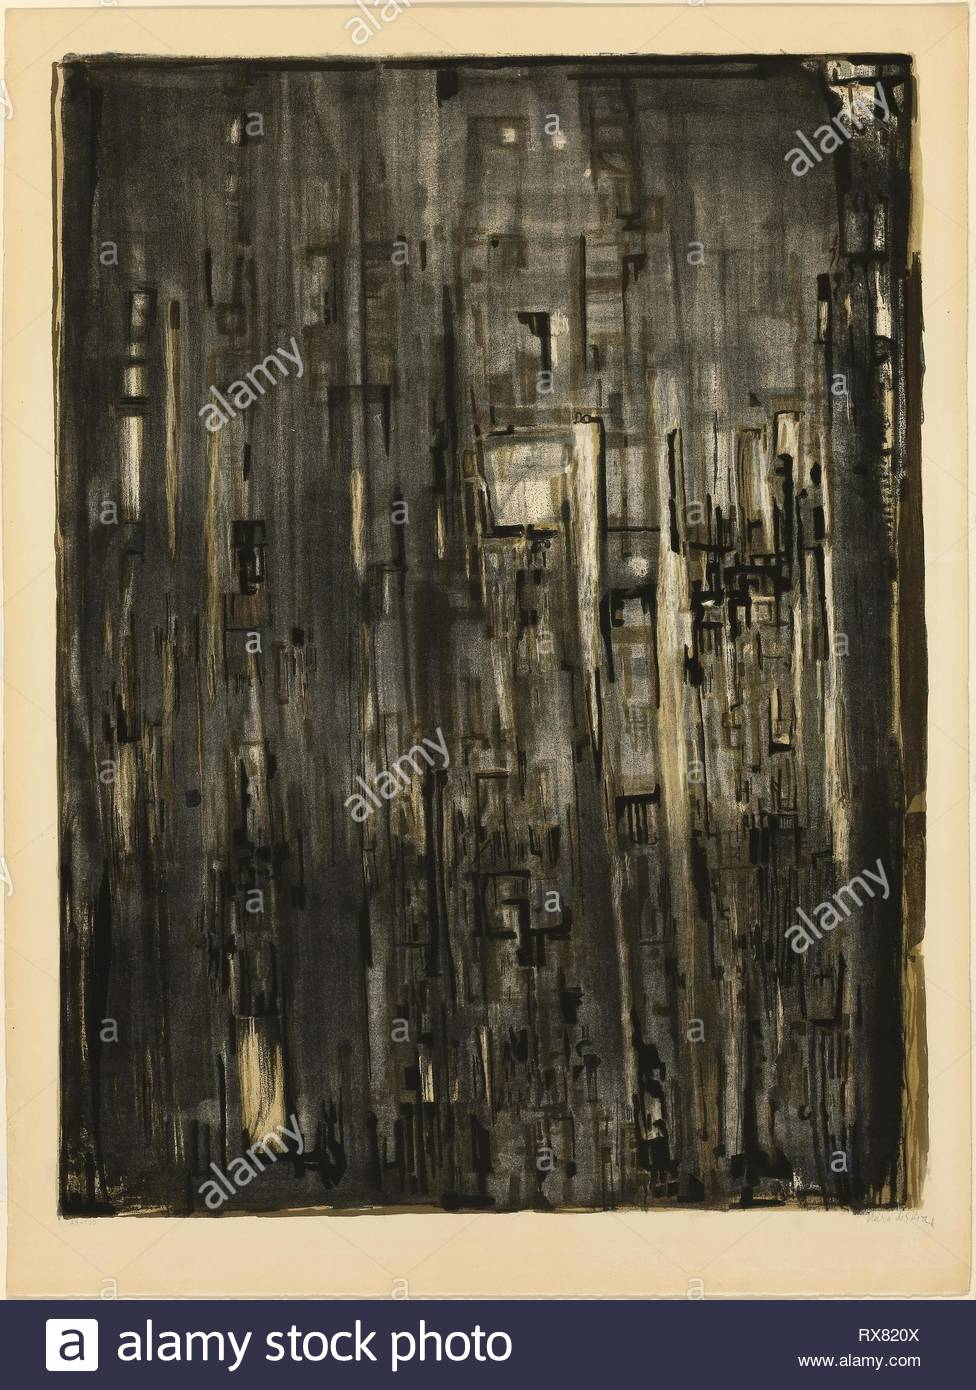 Nef. Maria Helena Vieira da Silva; French, 1908-1992. Date: 1971. Dimensions: 762 × 570 mm (image); 848 × 634 mm (sheet). Color lithograph on ivory wove paper. Origin: France. Museum: The Chicago Art Institute. - Stock Image